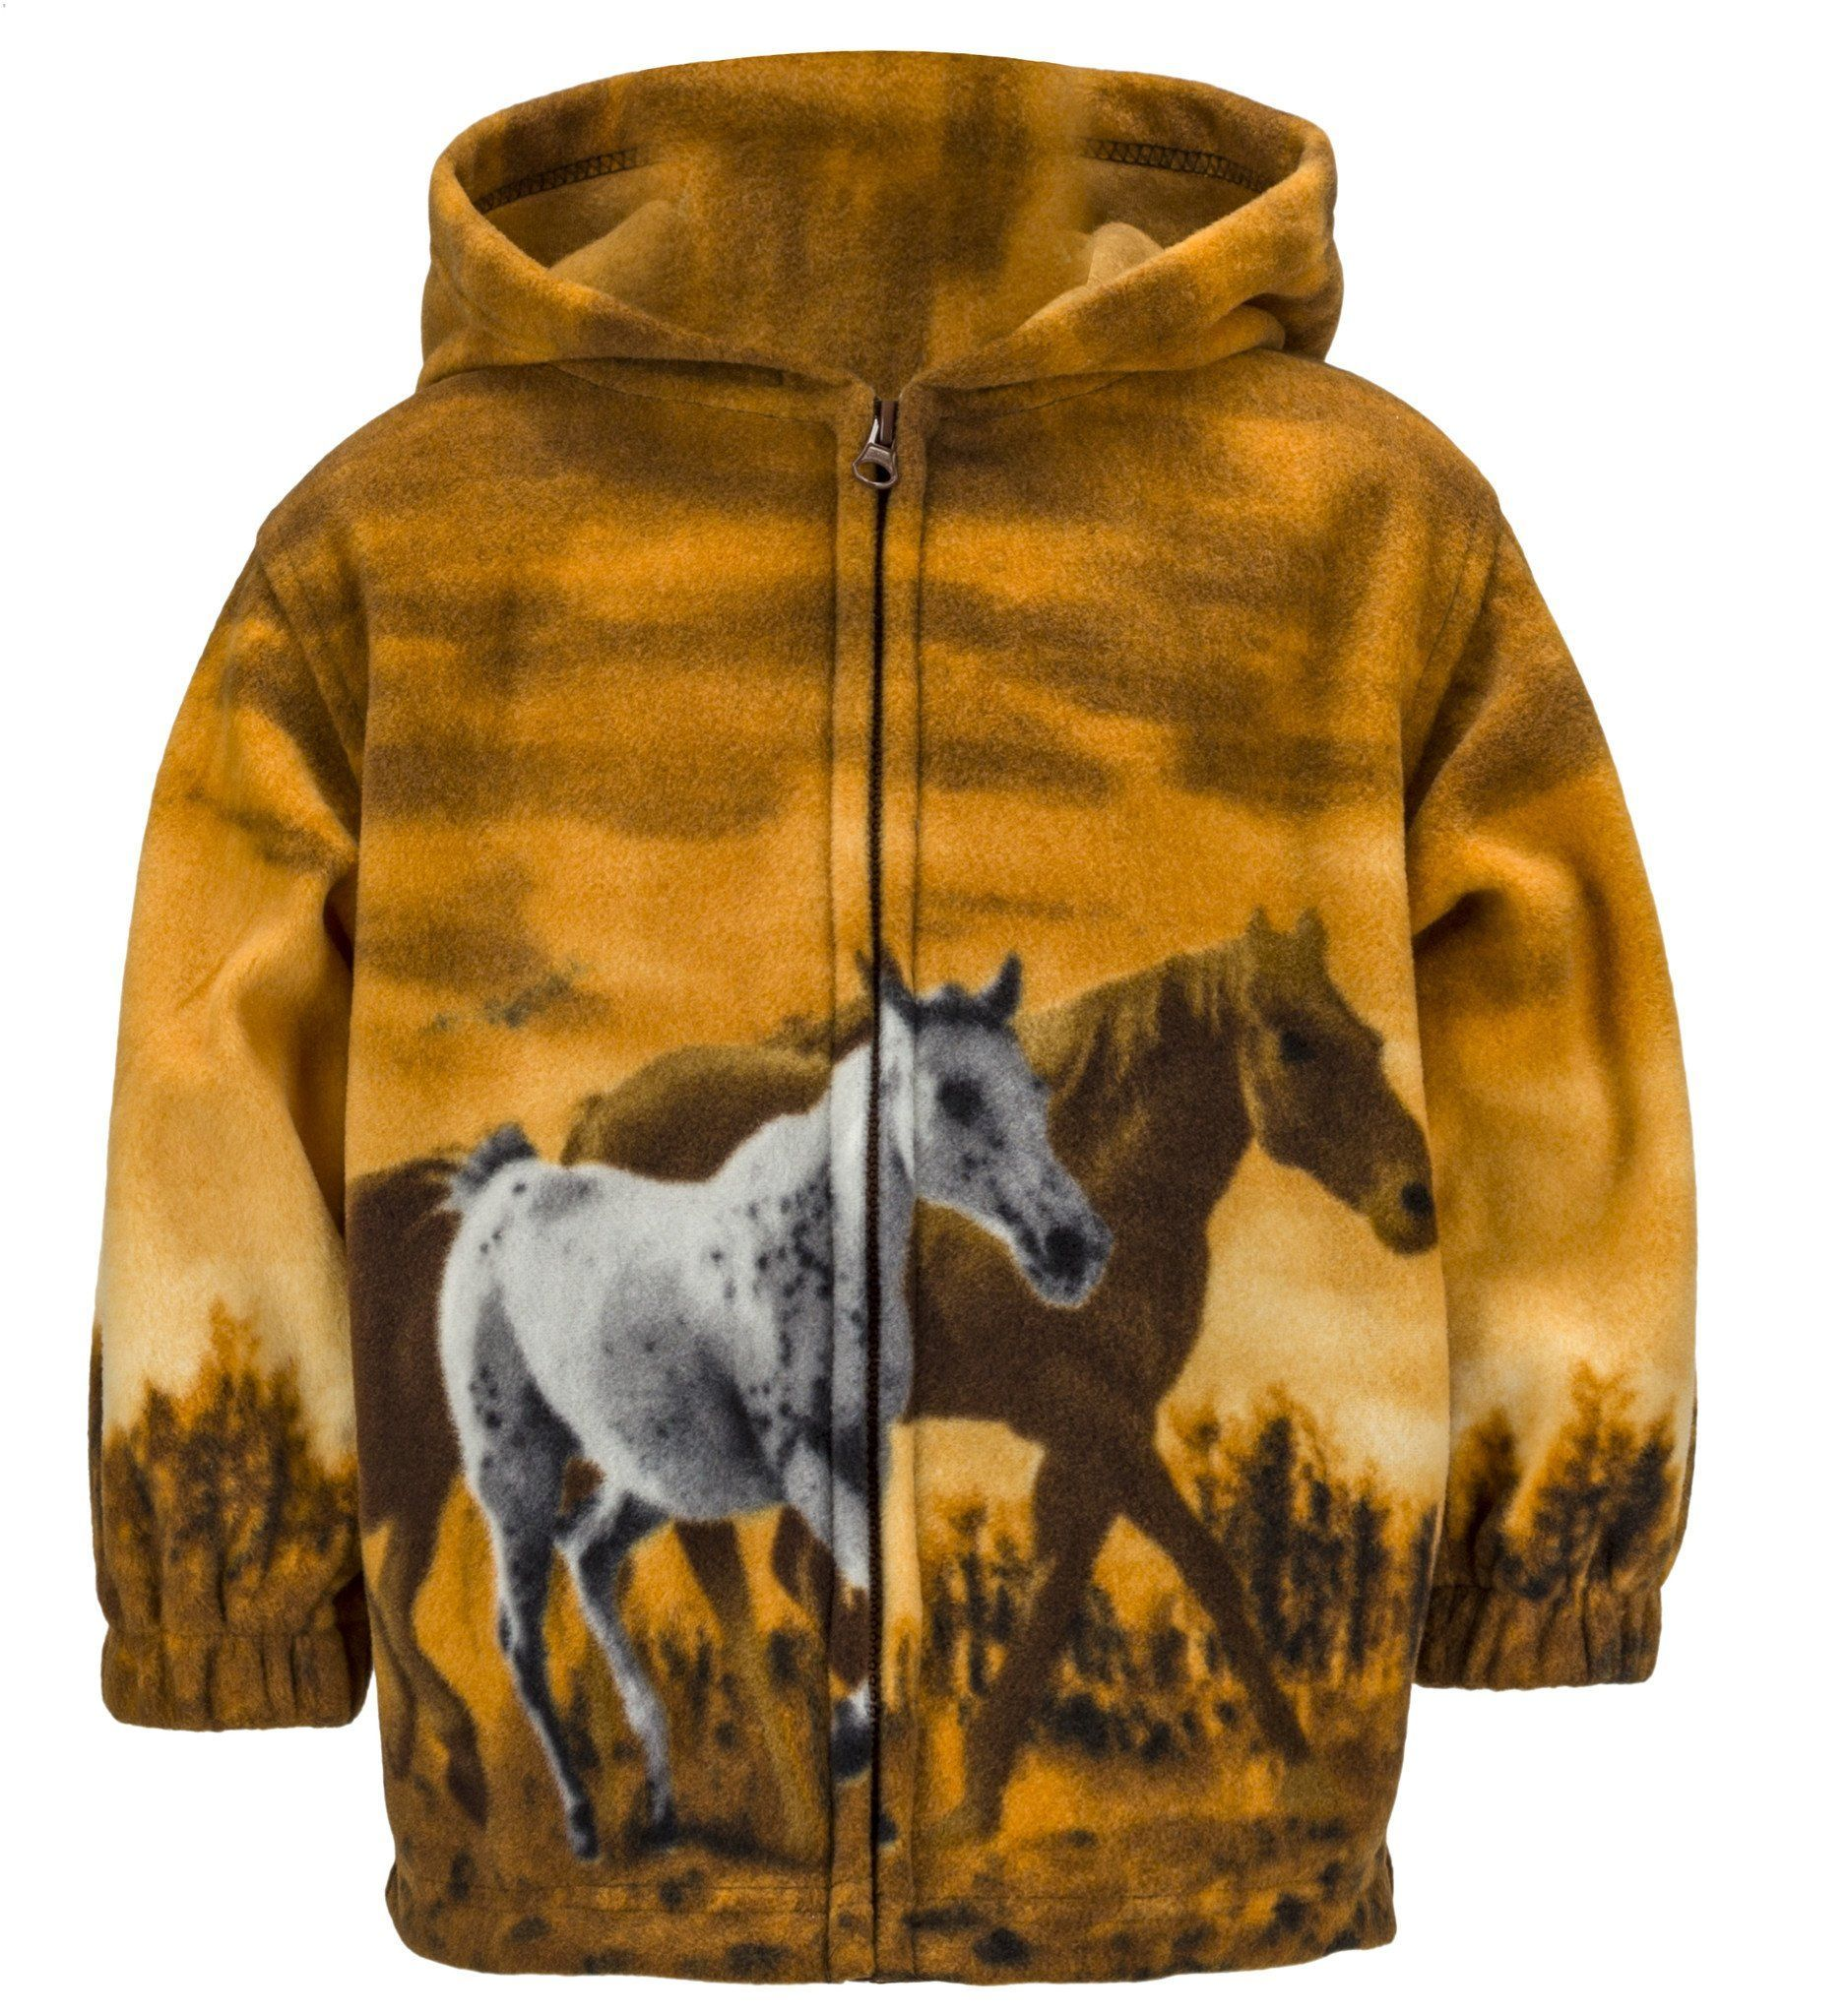 d59cd2986f76 Wildkind Toddler R'Lixio Horse Animal Jacket | Products | Jackets ...